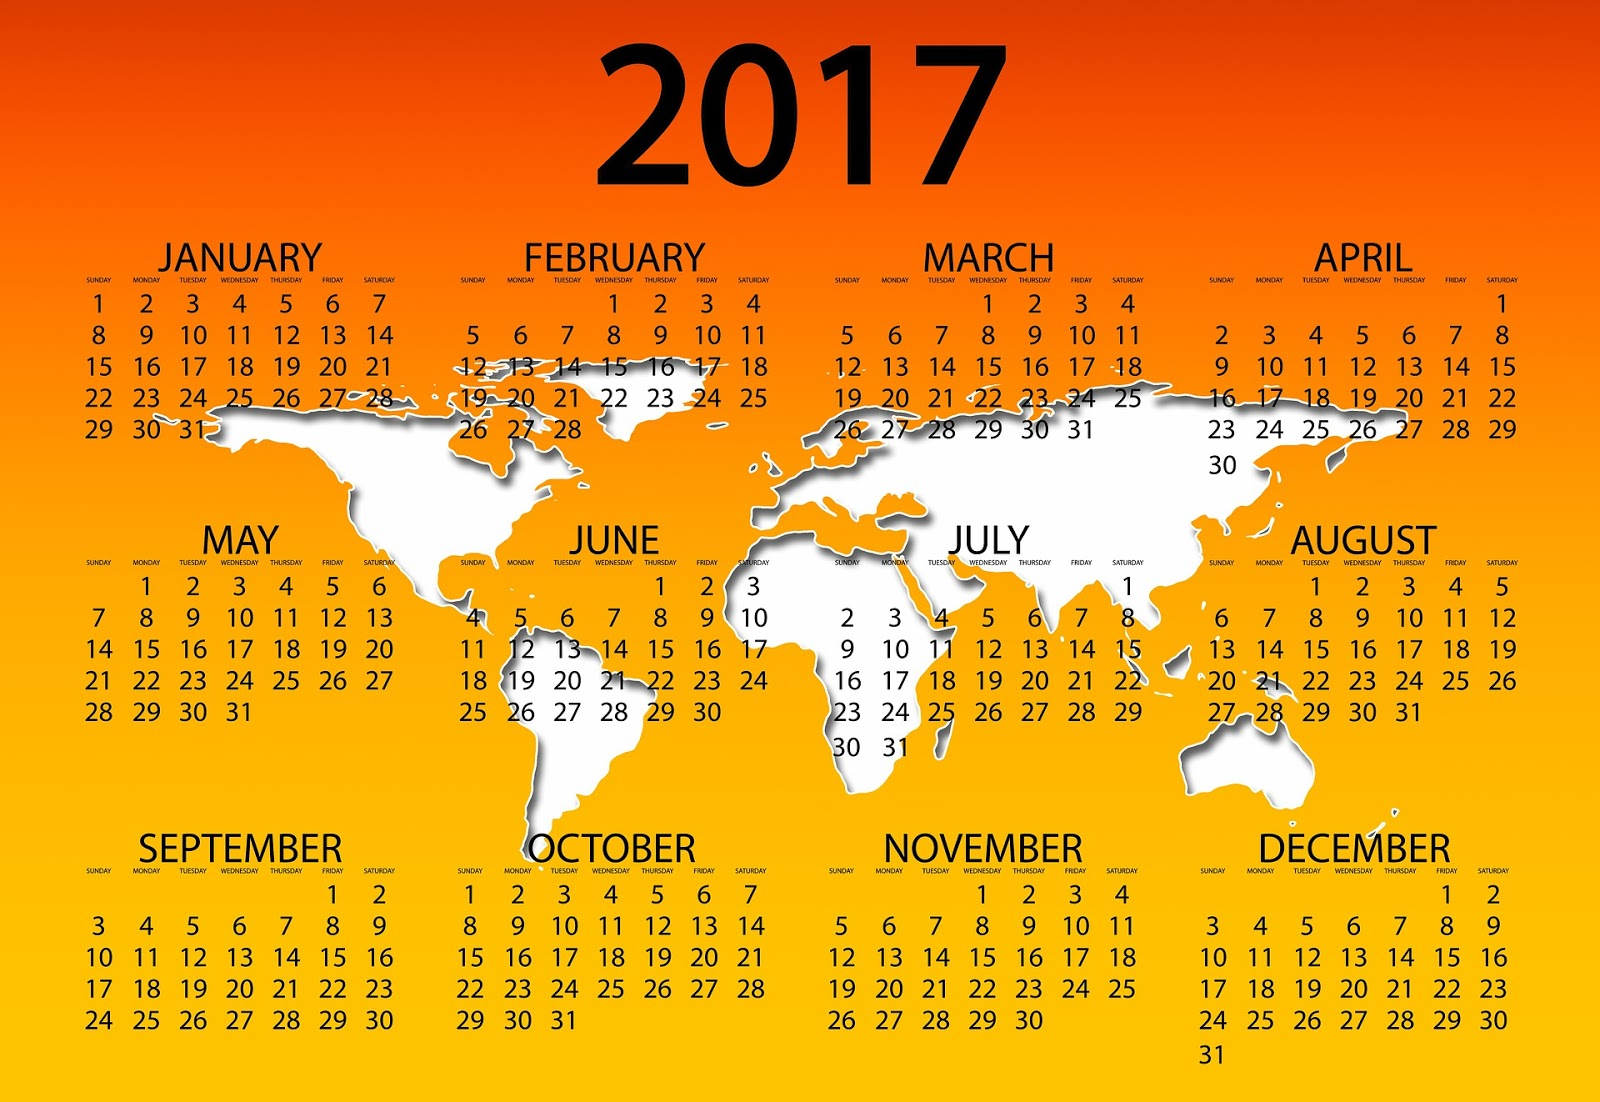 Calendar 2017 Wallpapers High Quality Download Free